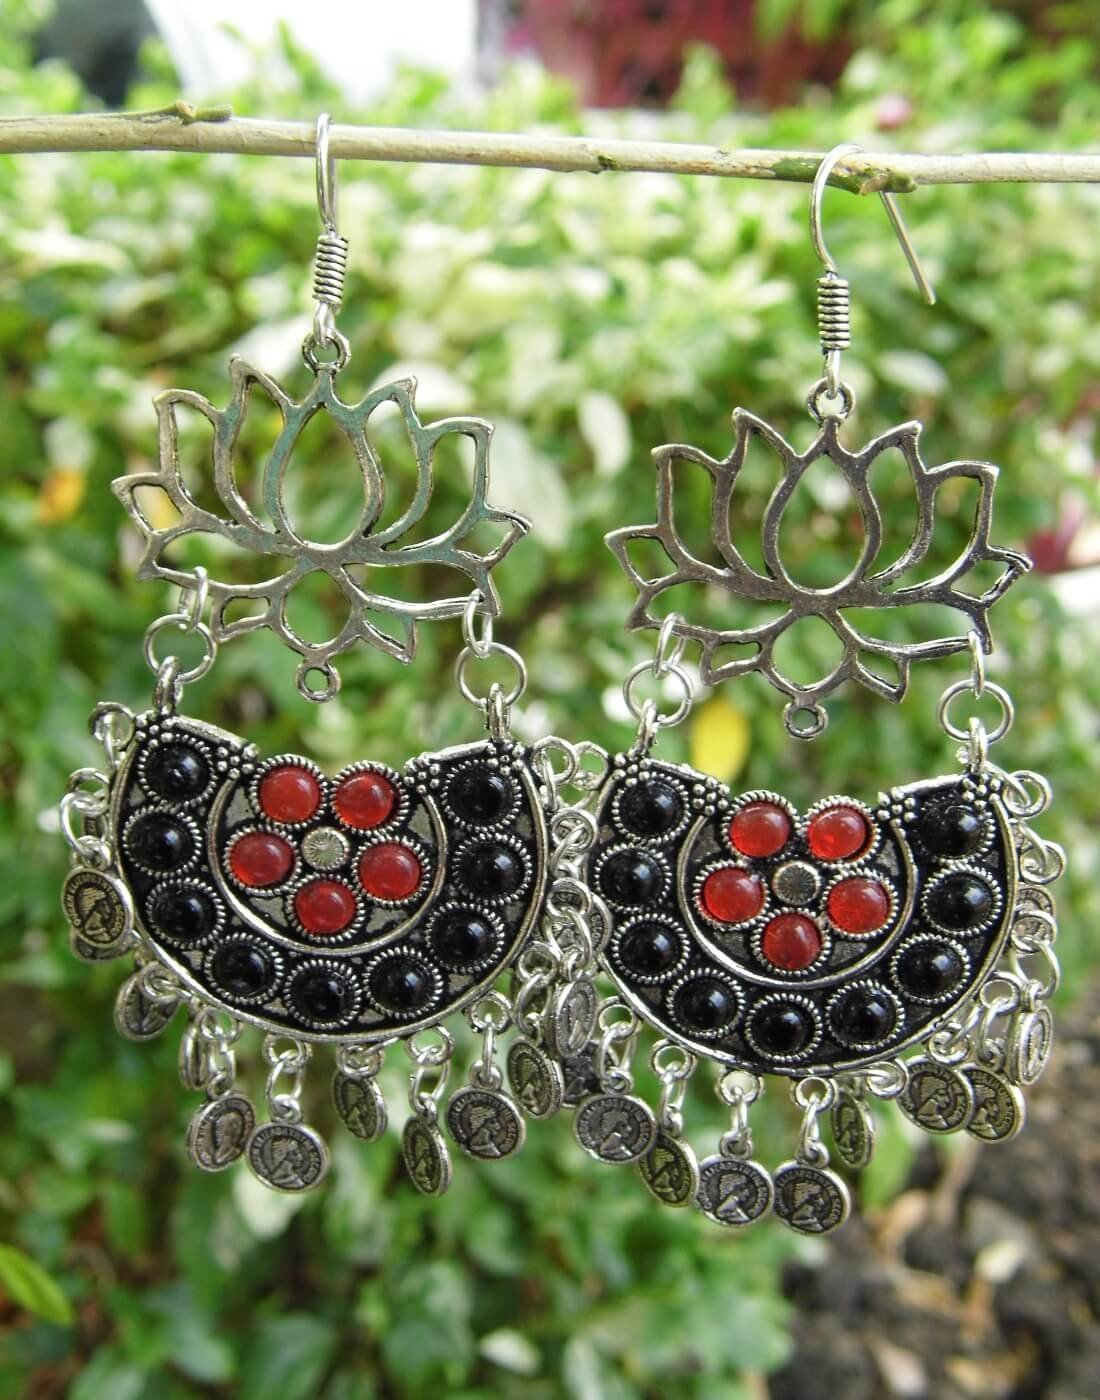 Afghani Earrings/Chandbalis In Alloy Metal- Lotus Pattern 3